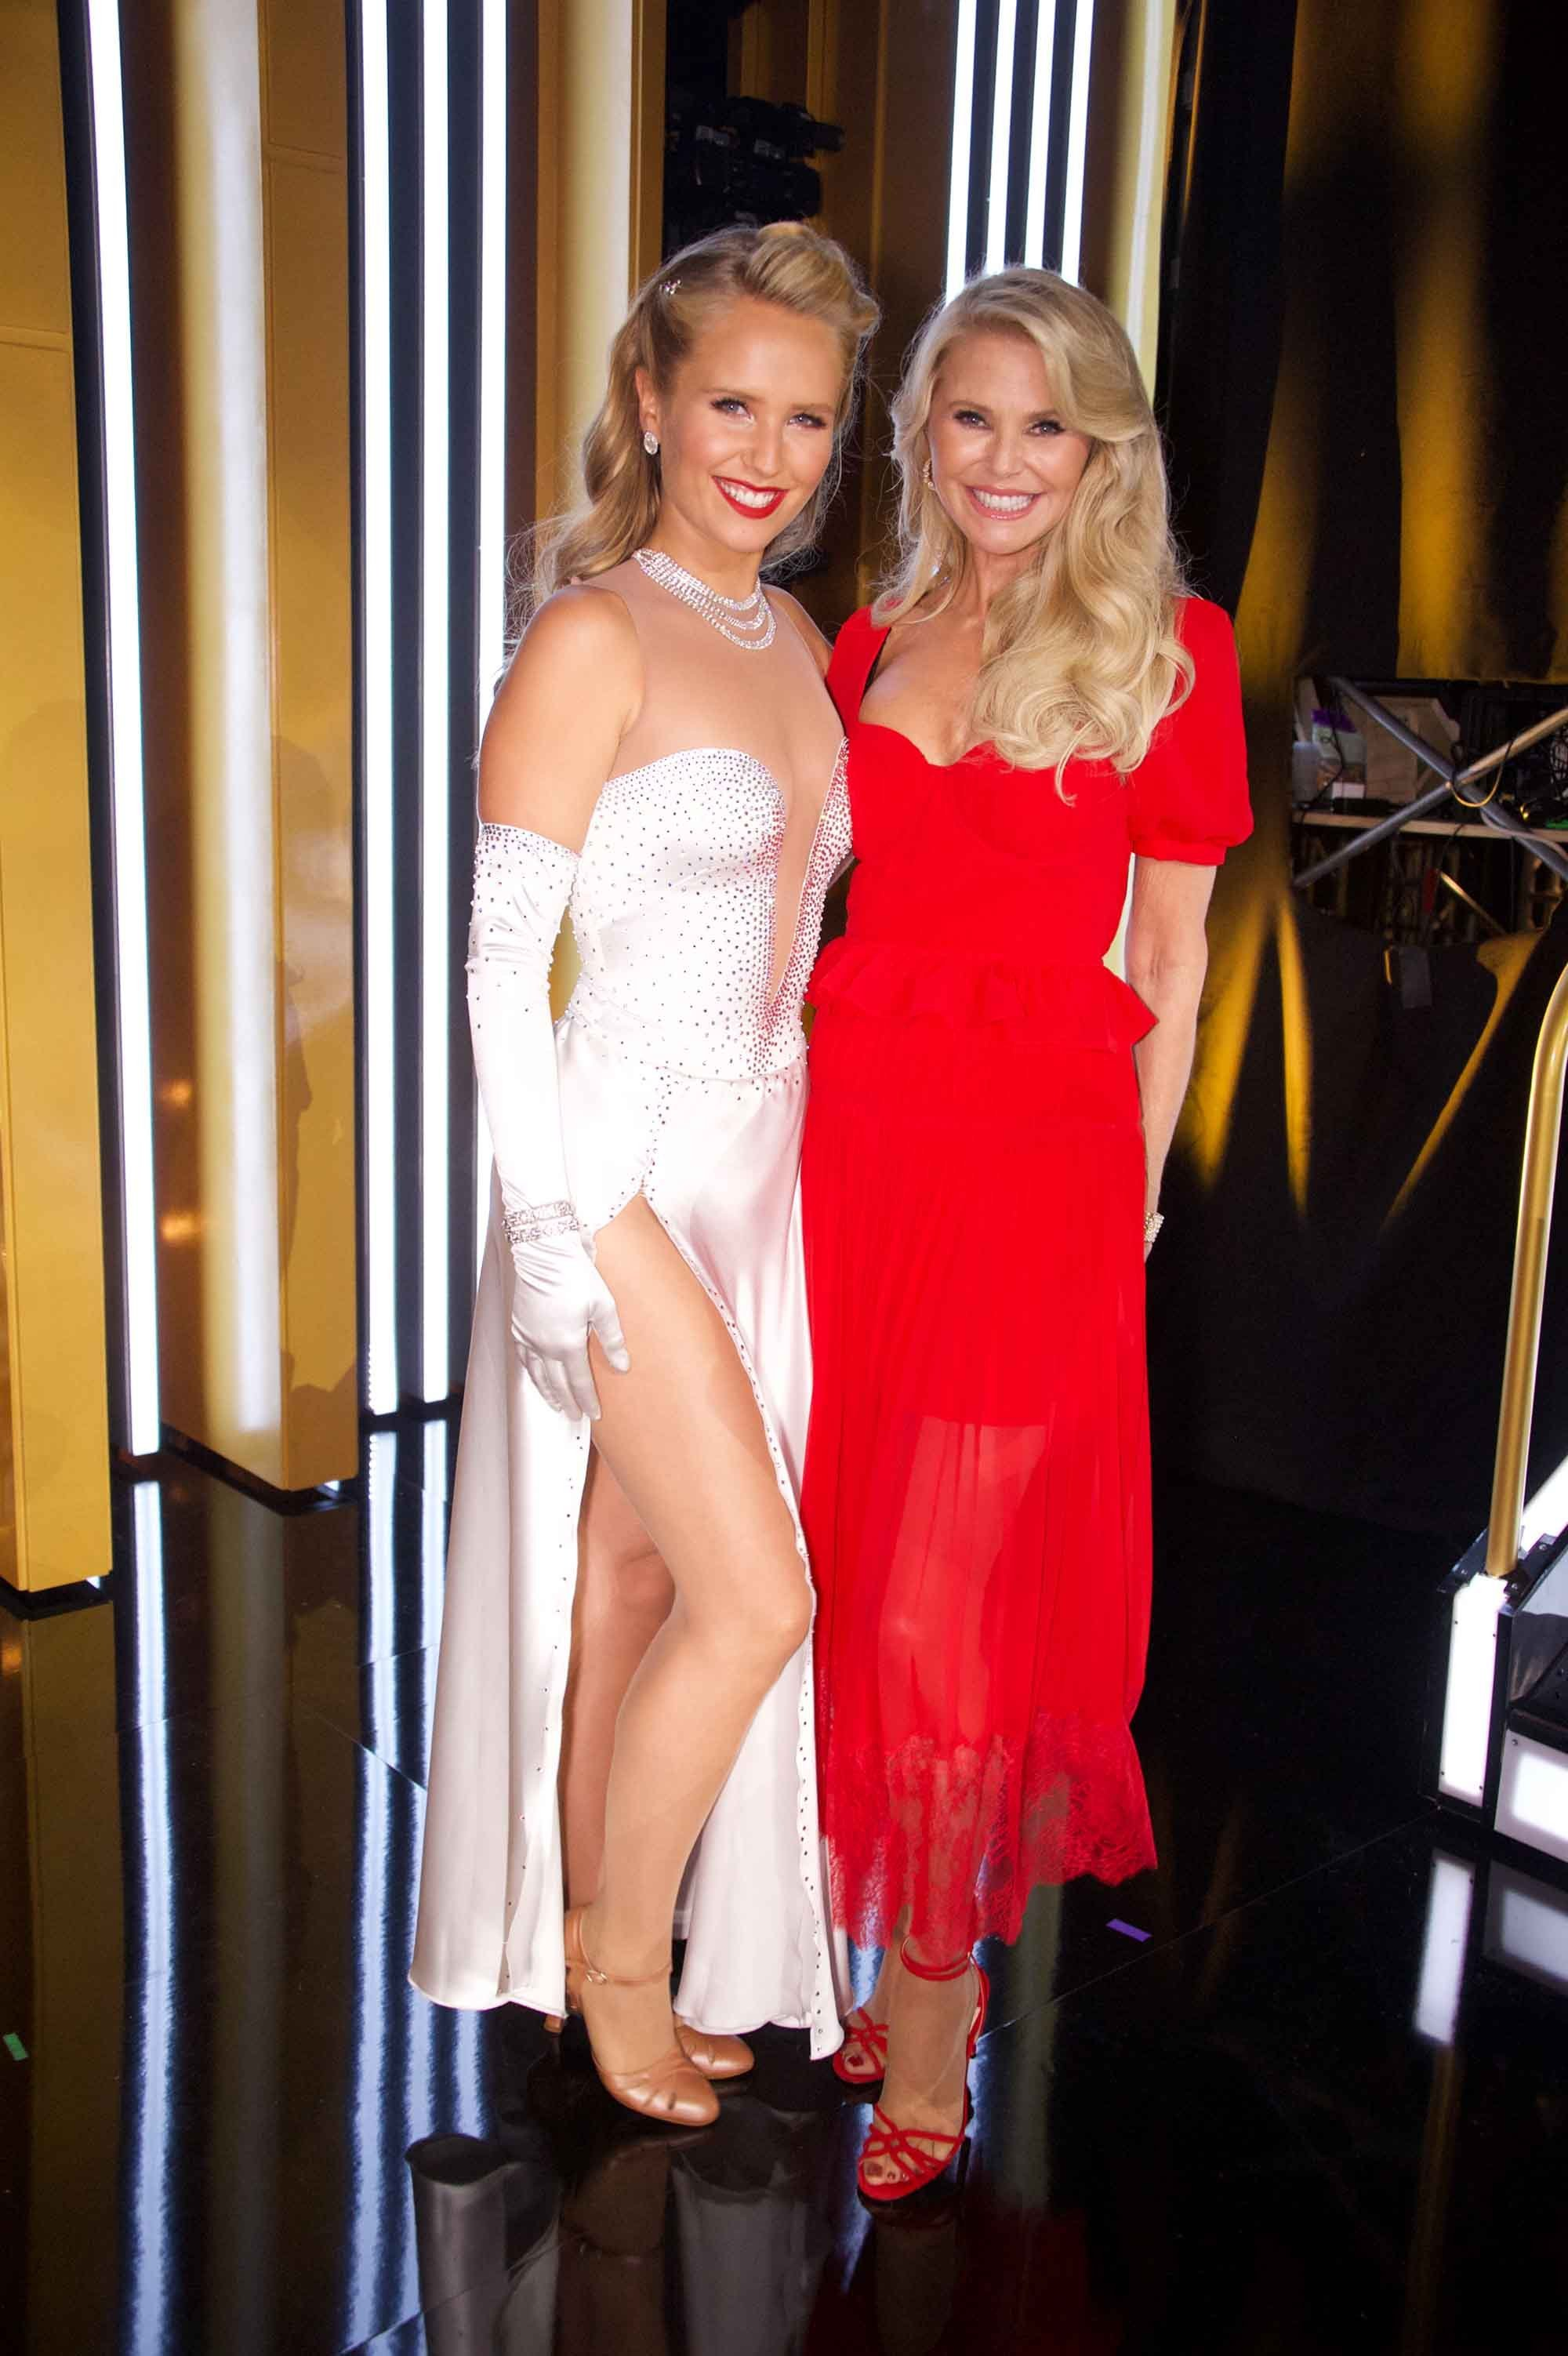 Christie Brinkley responds to Wendy Williams' claims she faked her 'DWTS' injury